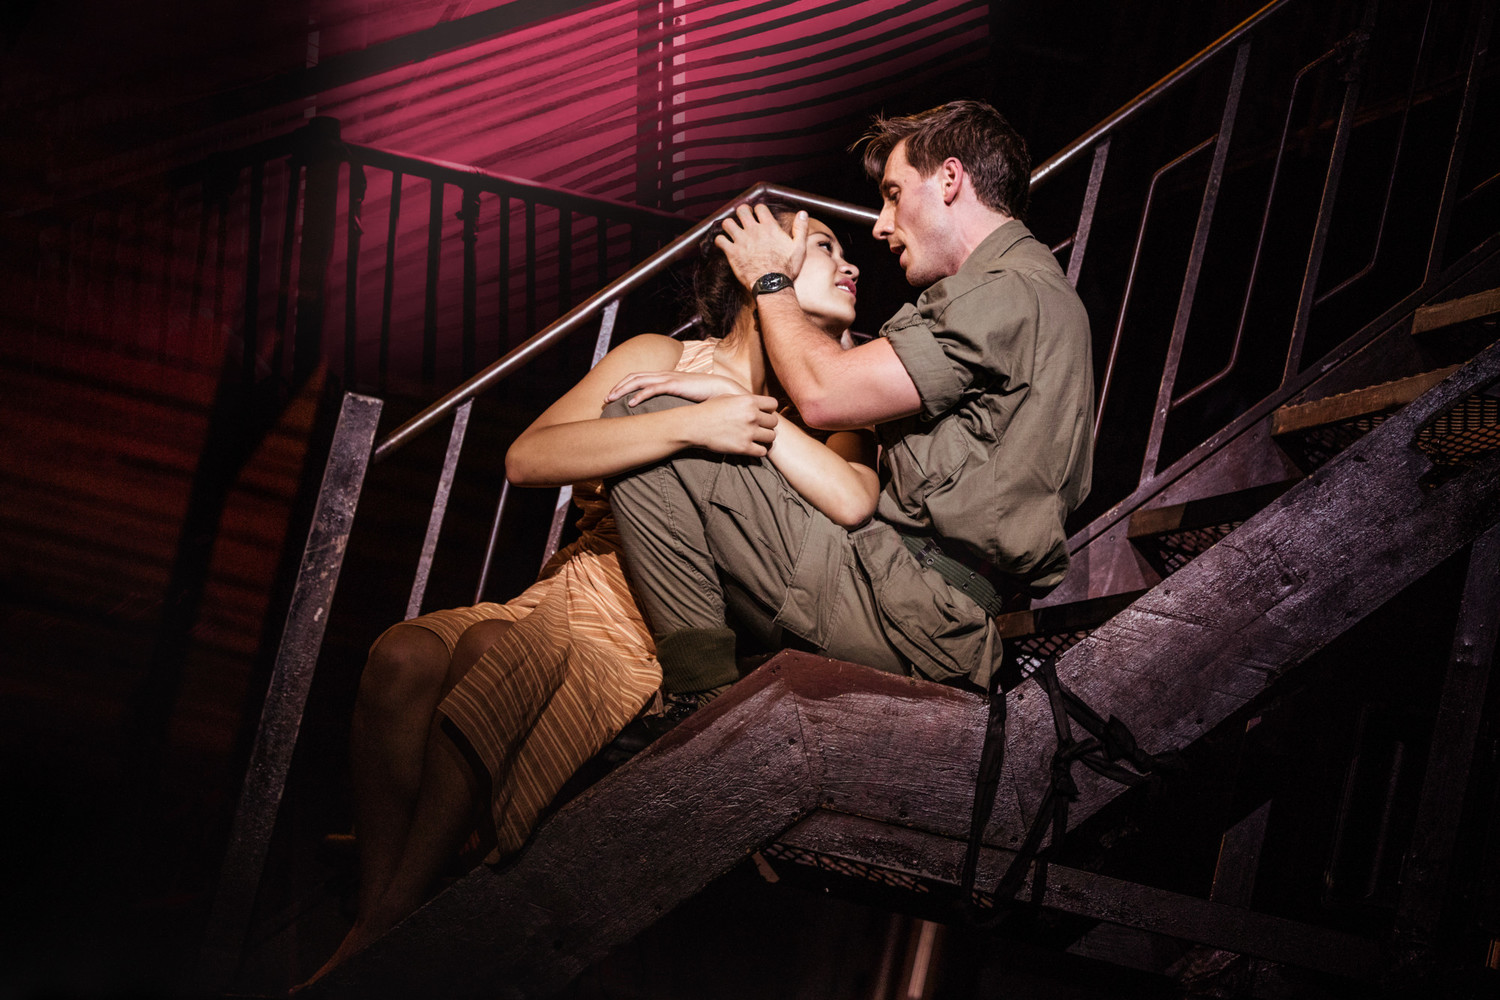 BWW Review: The U.S. Tour of MISS SAIGON Breathes New Life Into a Classic Musical